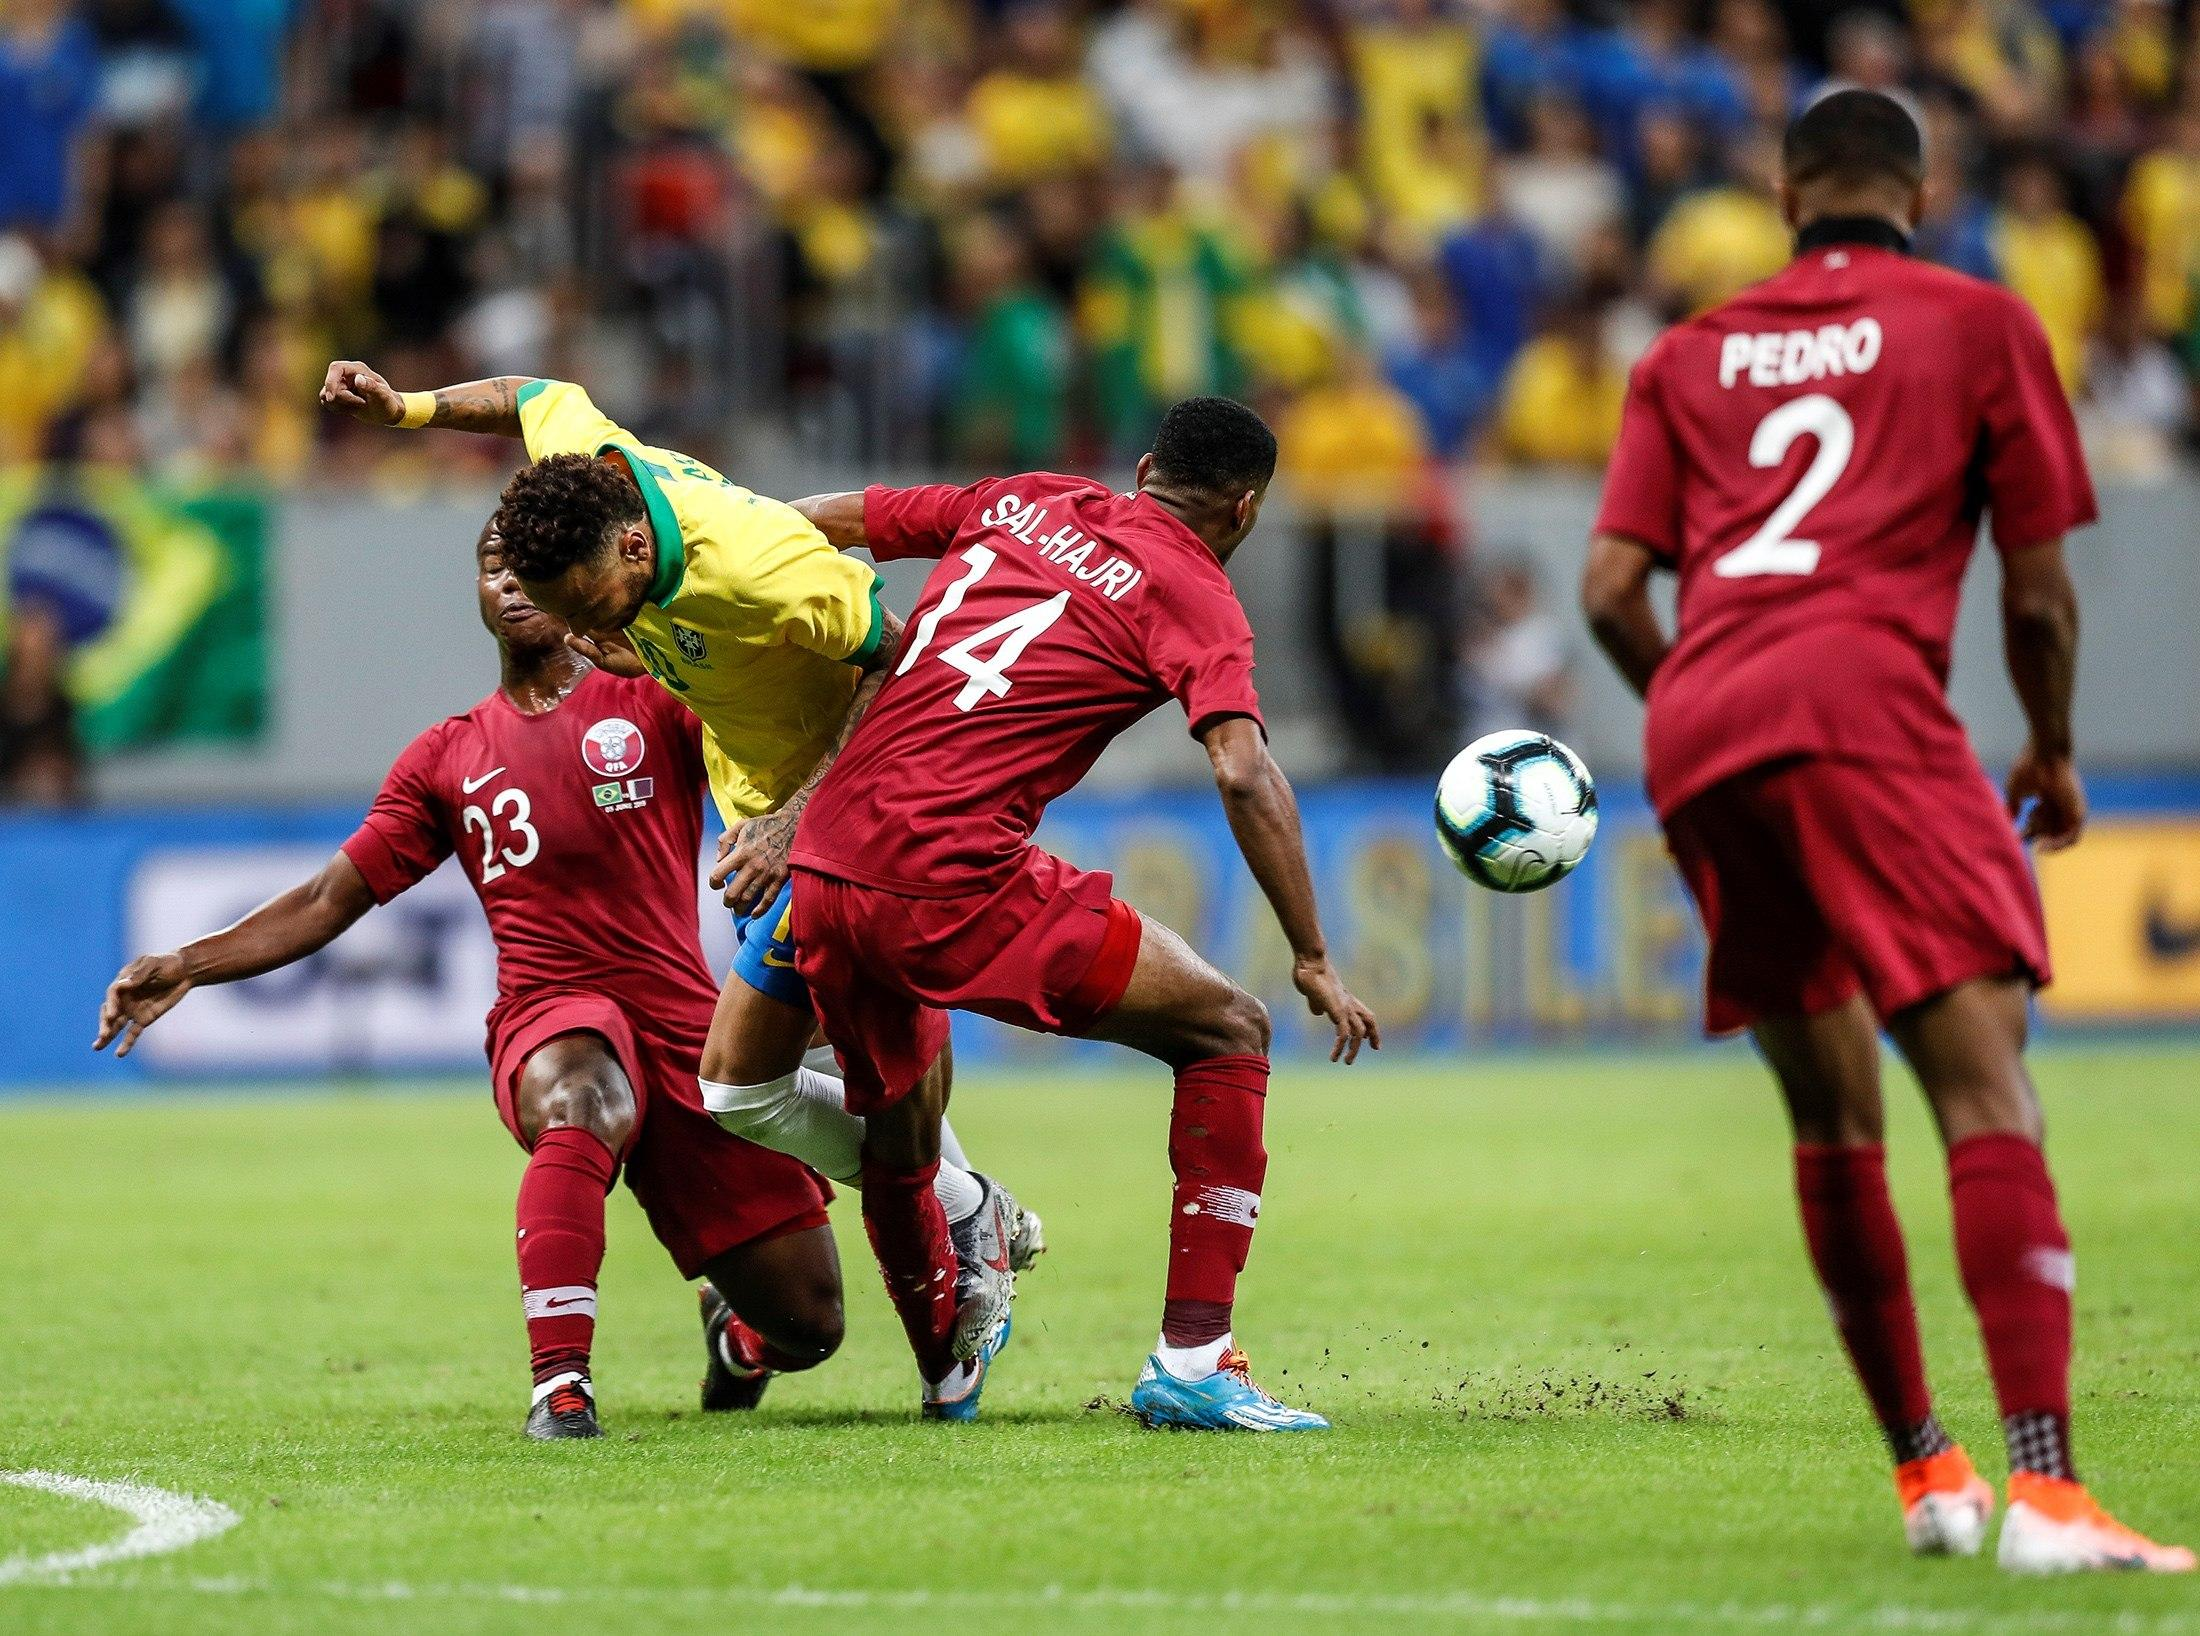 Image Result For Brasil Vs Peru Amistoso 2019 Partido En Vivo